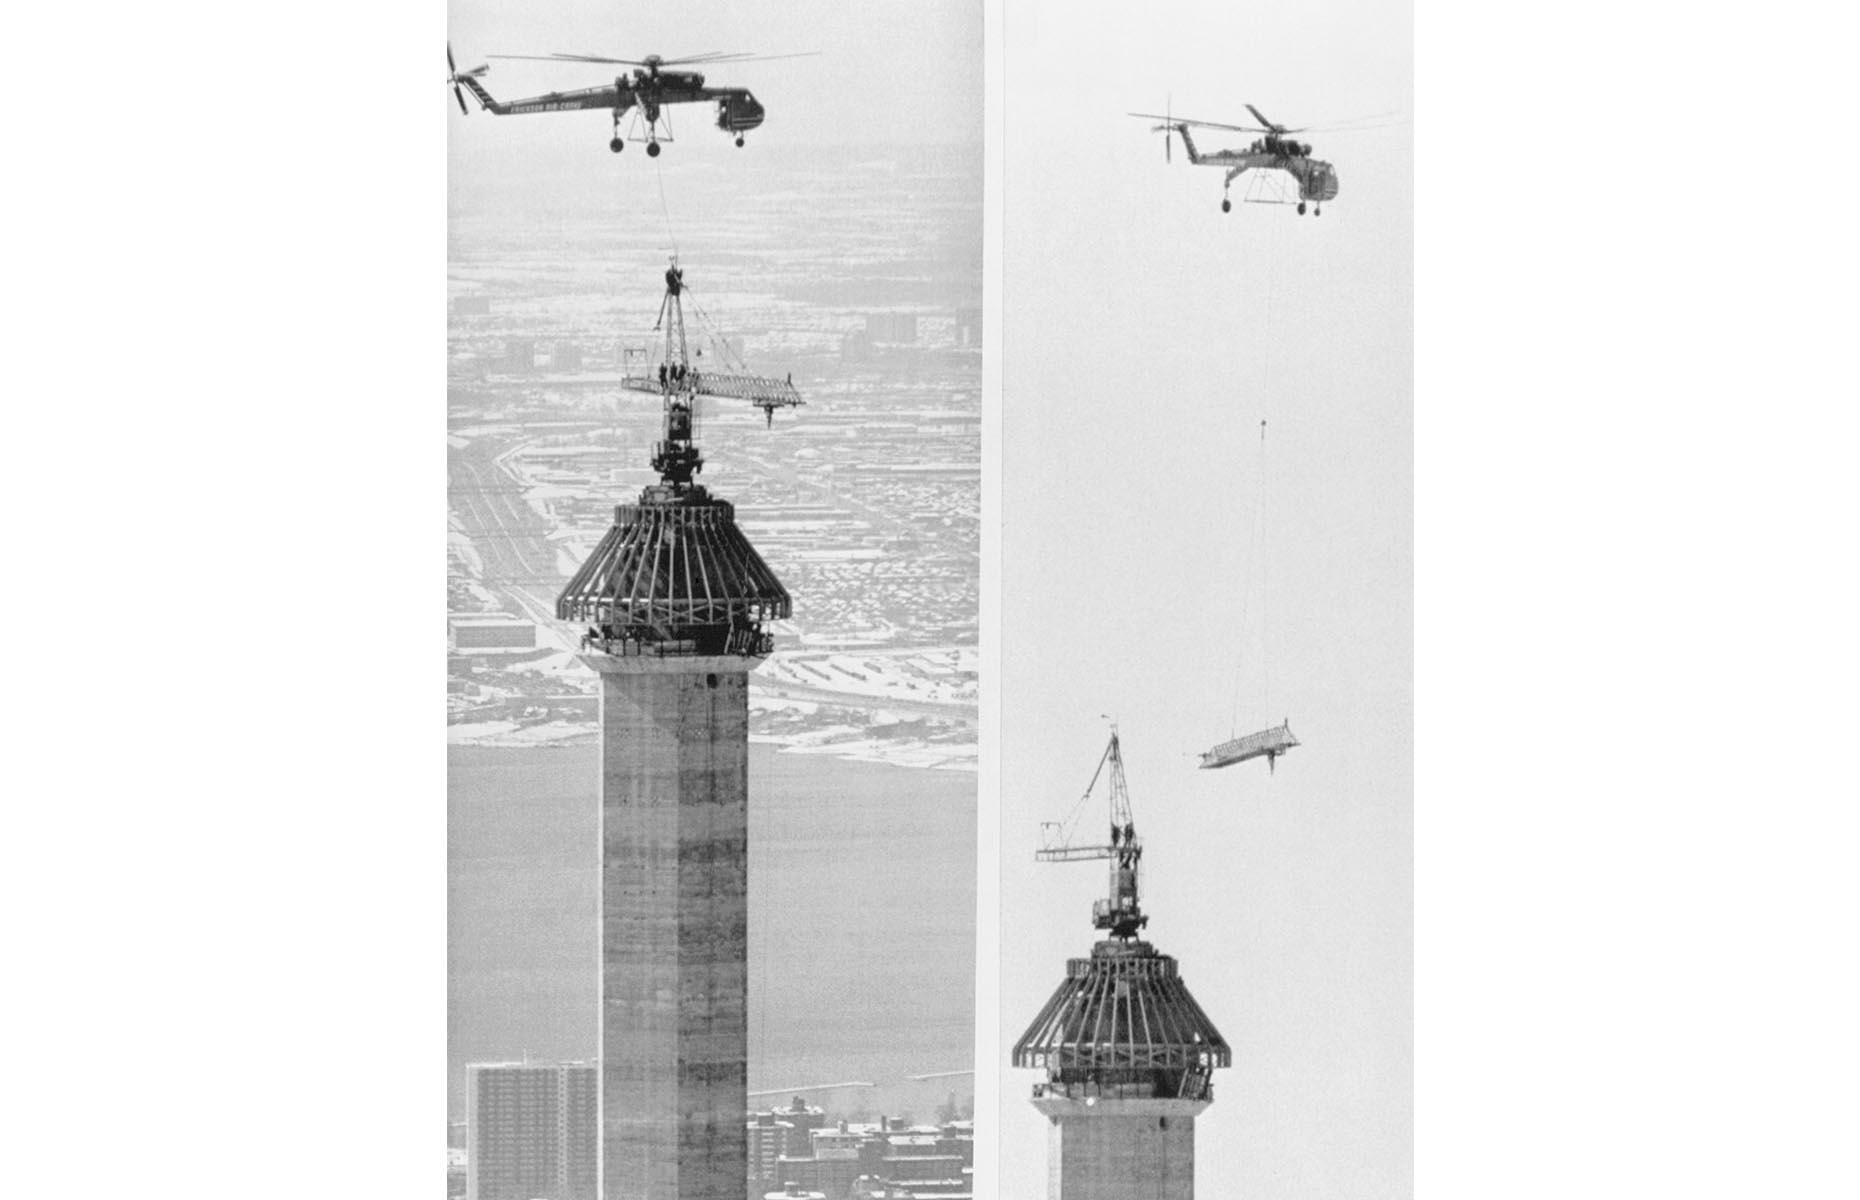 Slide 32 of 41: Construction of this juggernaut involved more than 1,500 workers and the concrete tower is topped out with a 335-foot (102m) antenna. This 1975 photo shows a Sikorsky CH-54 helicopter moving the giant crane used to build the tower, so the antenna could finally be fitted.